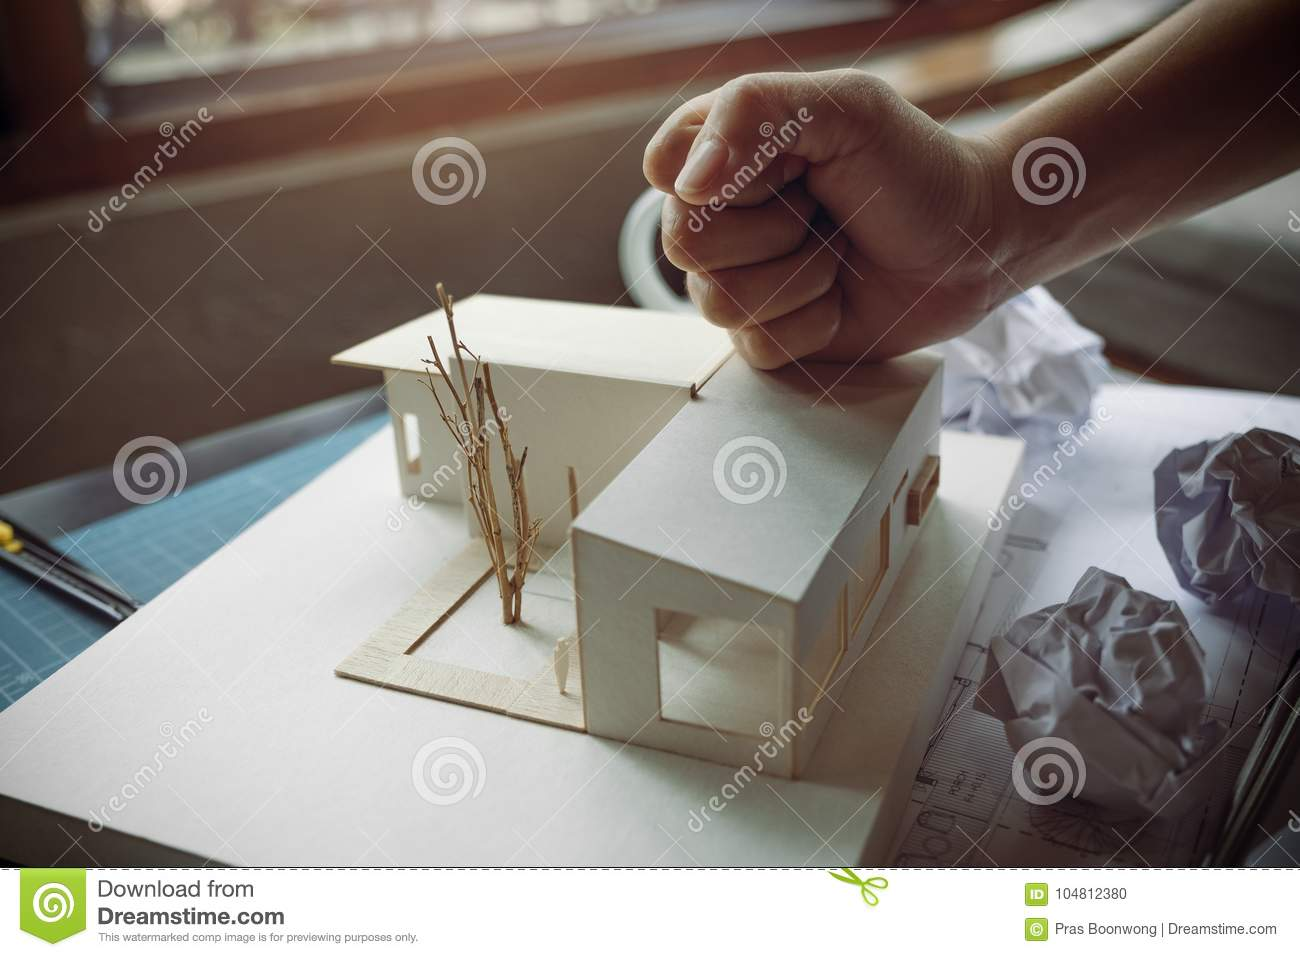 Closeup image of an angry architects try to destroy an architecture model on the table